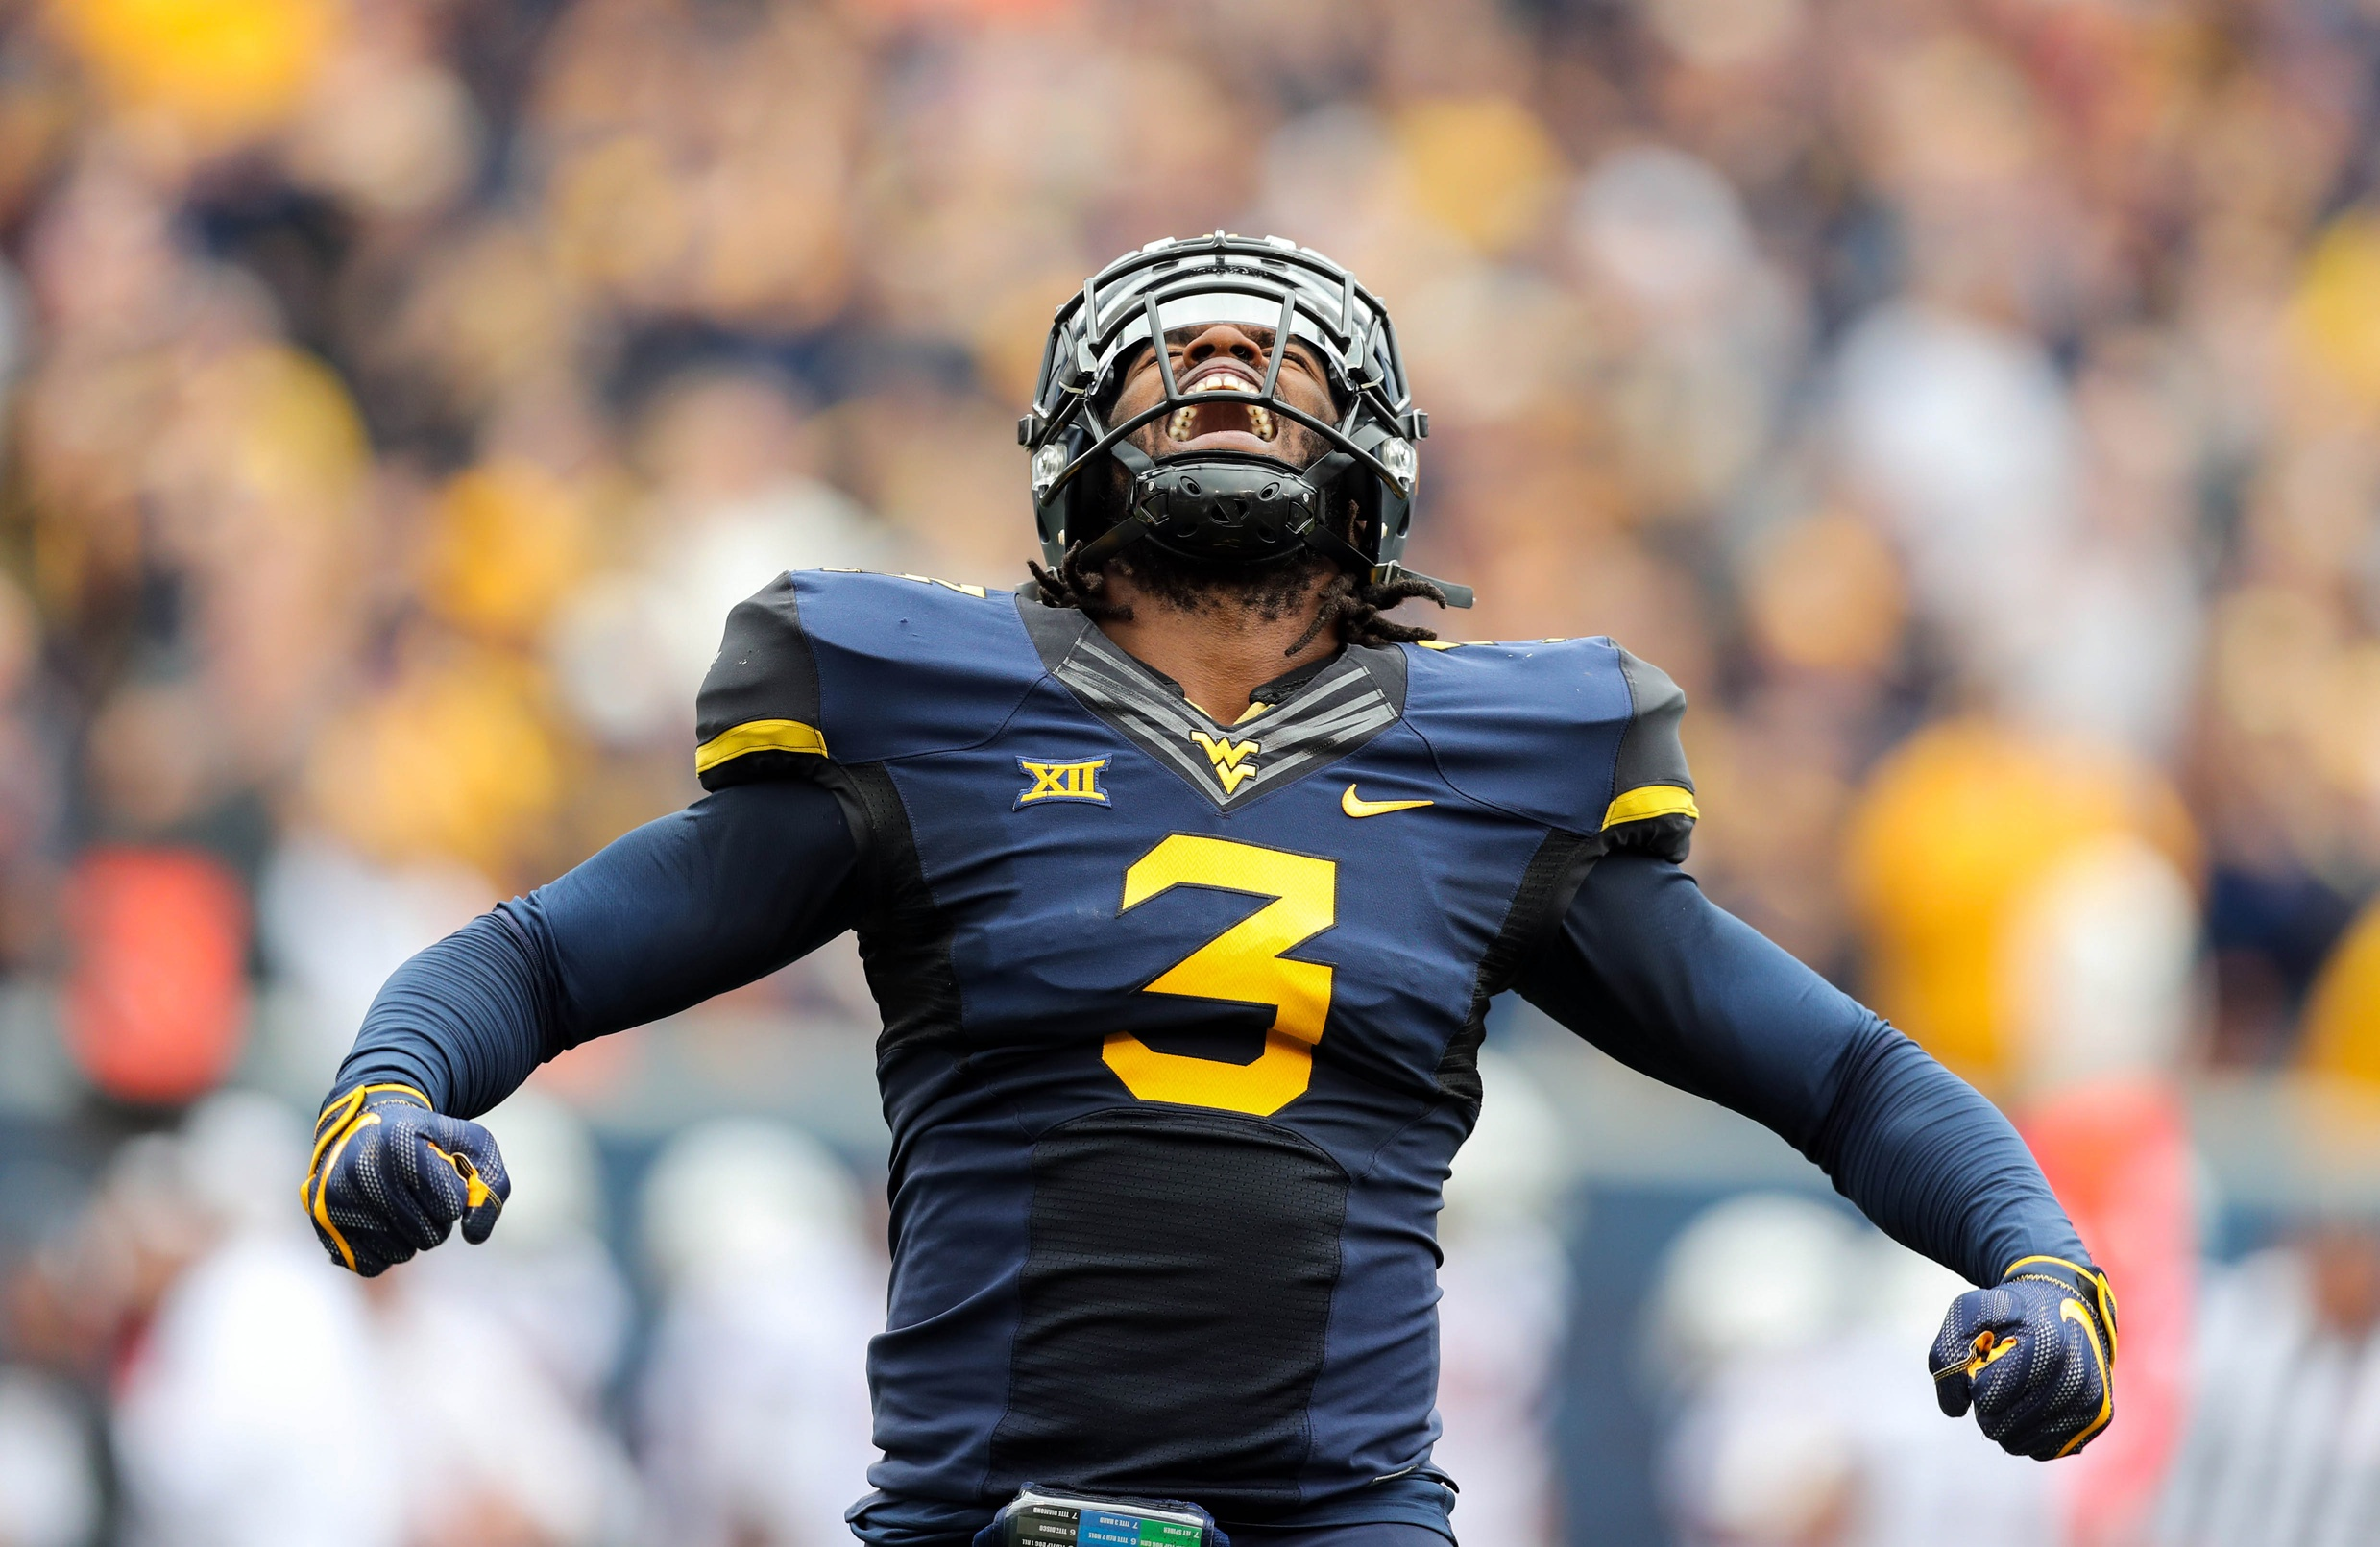 WVU falls to Texas on senior day 28-14